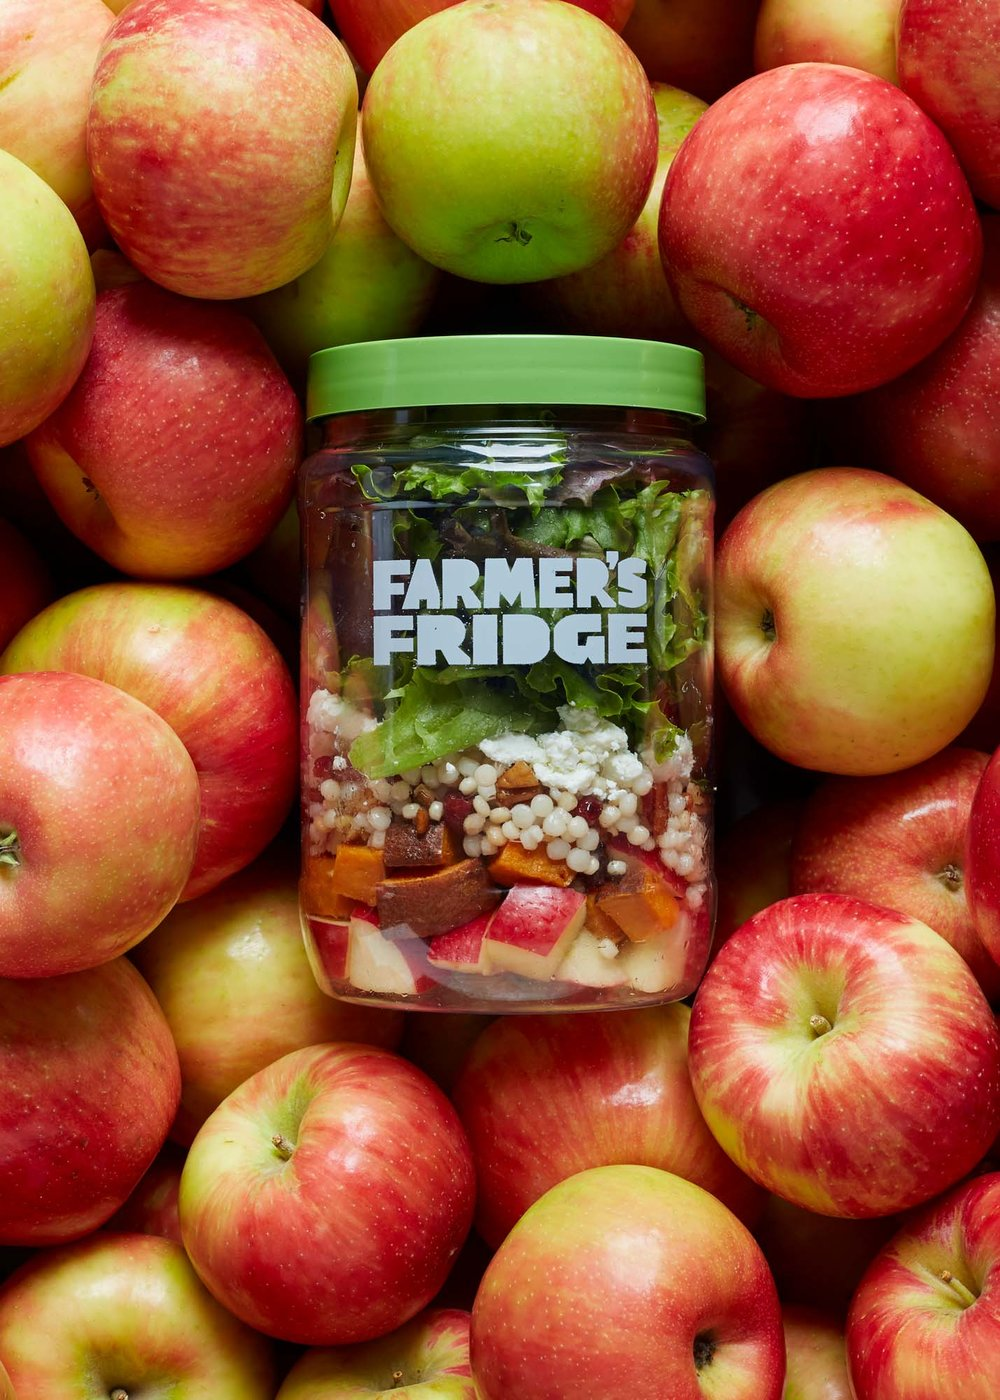 isaiah_jay_farmers_fridge_06.jpg